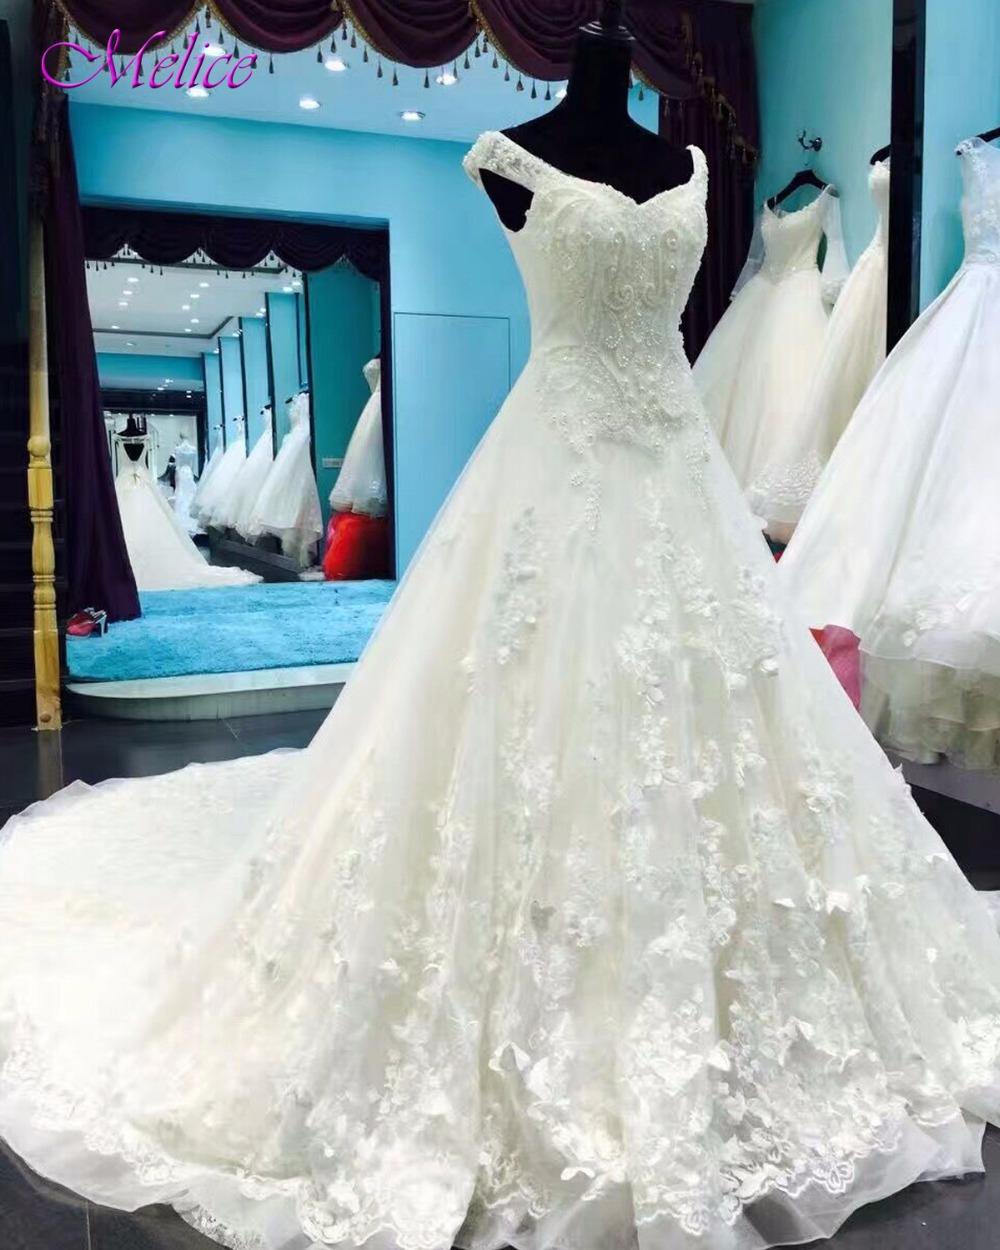 Melice Robe De Mariage Sweetheart Neck Backless Princess Wedding Dress 2019 Royal Train Appliques A-Line Wedding Gown Plus Size